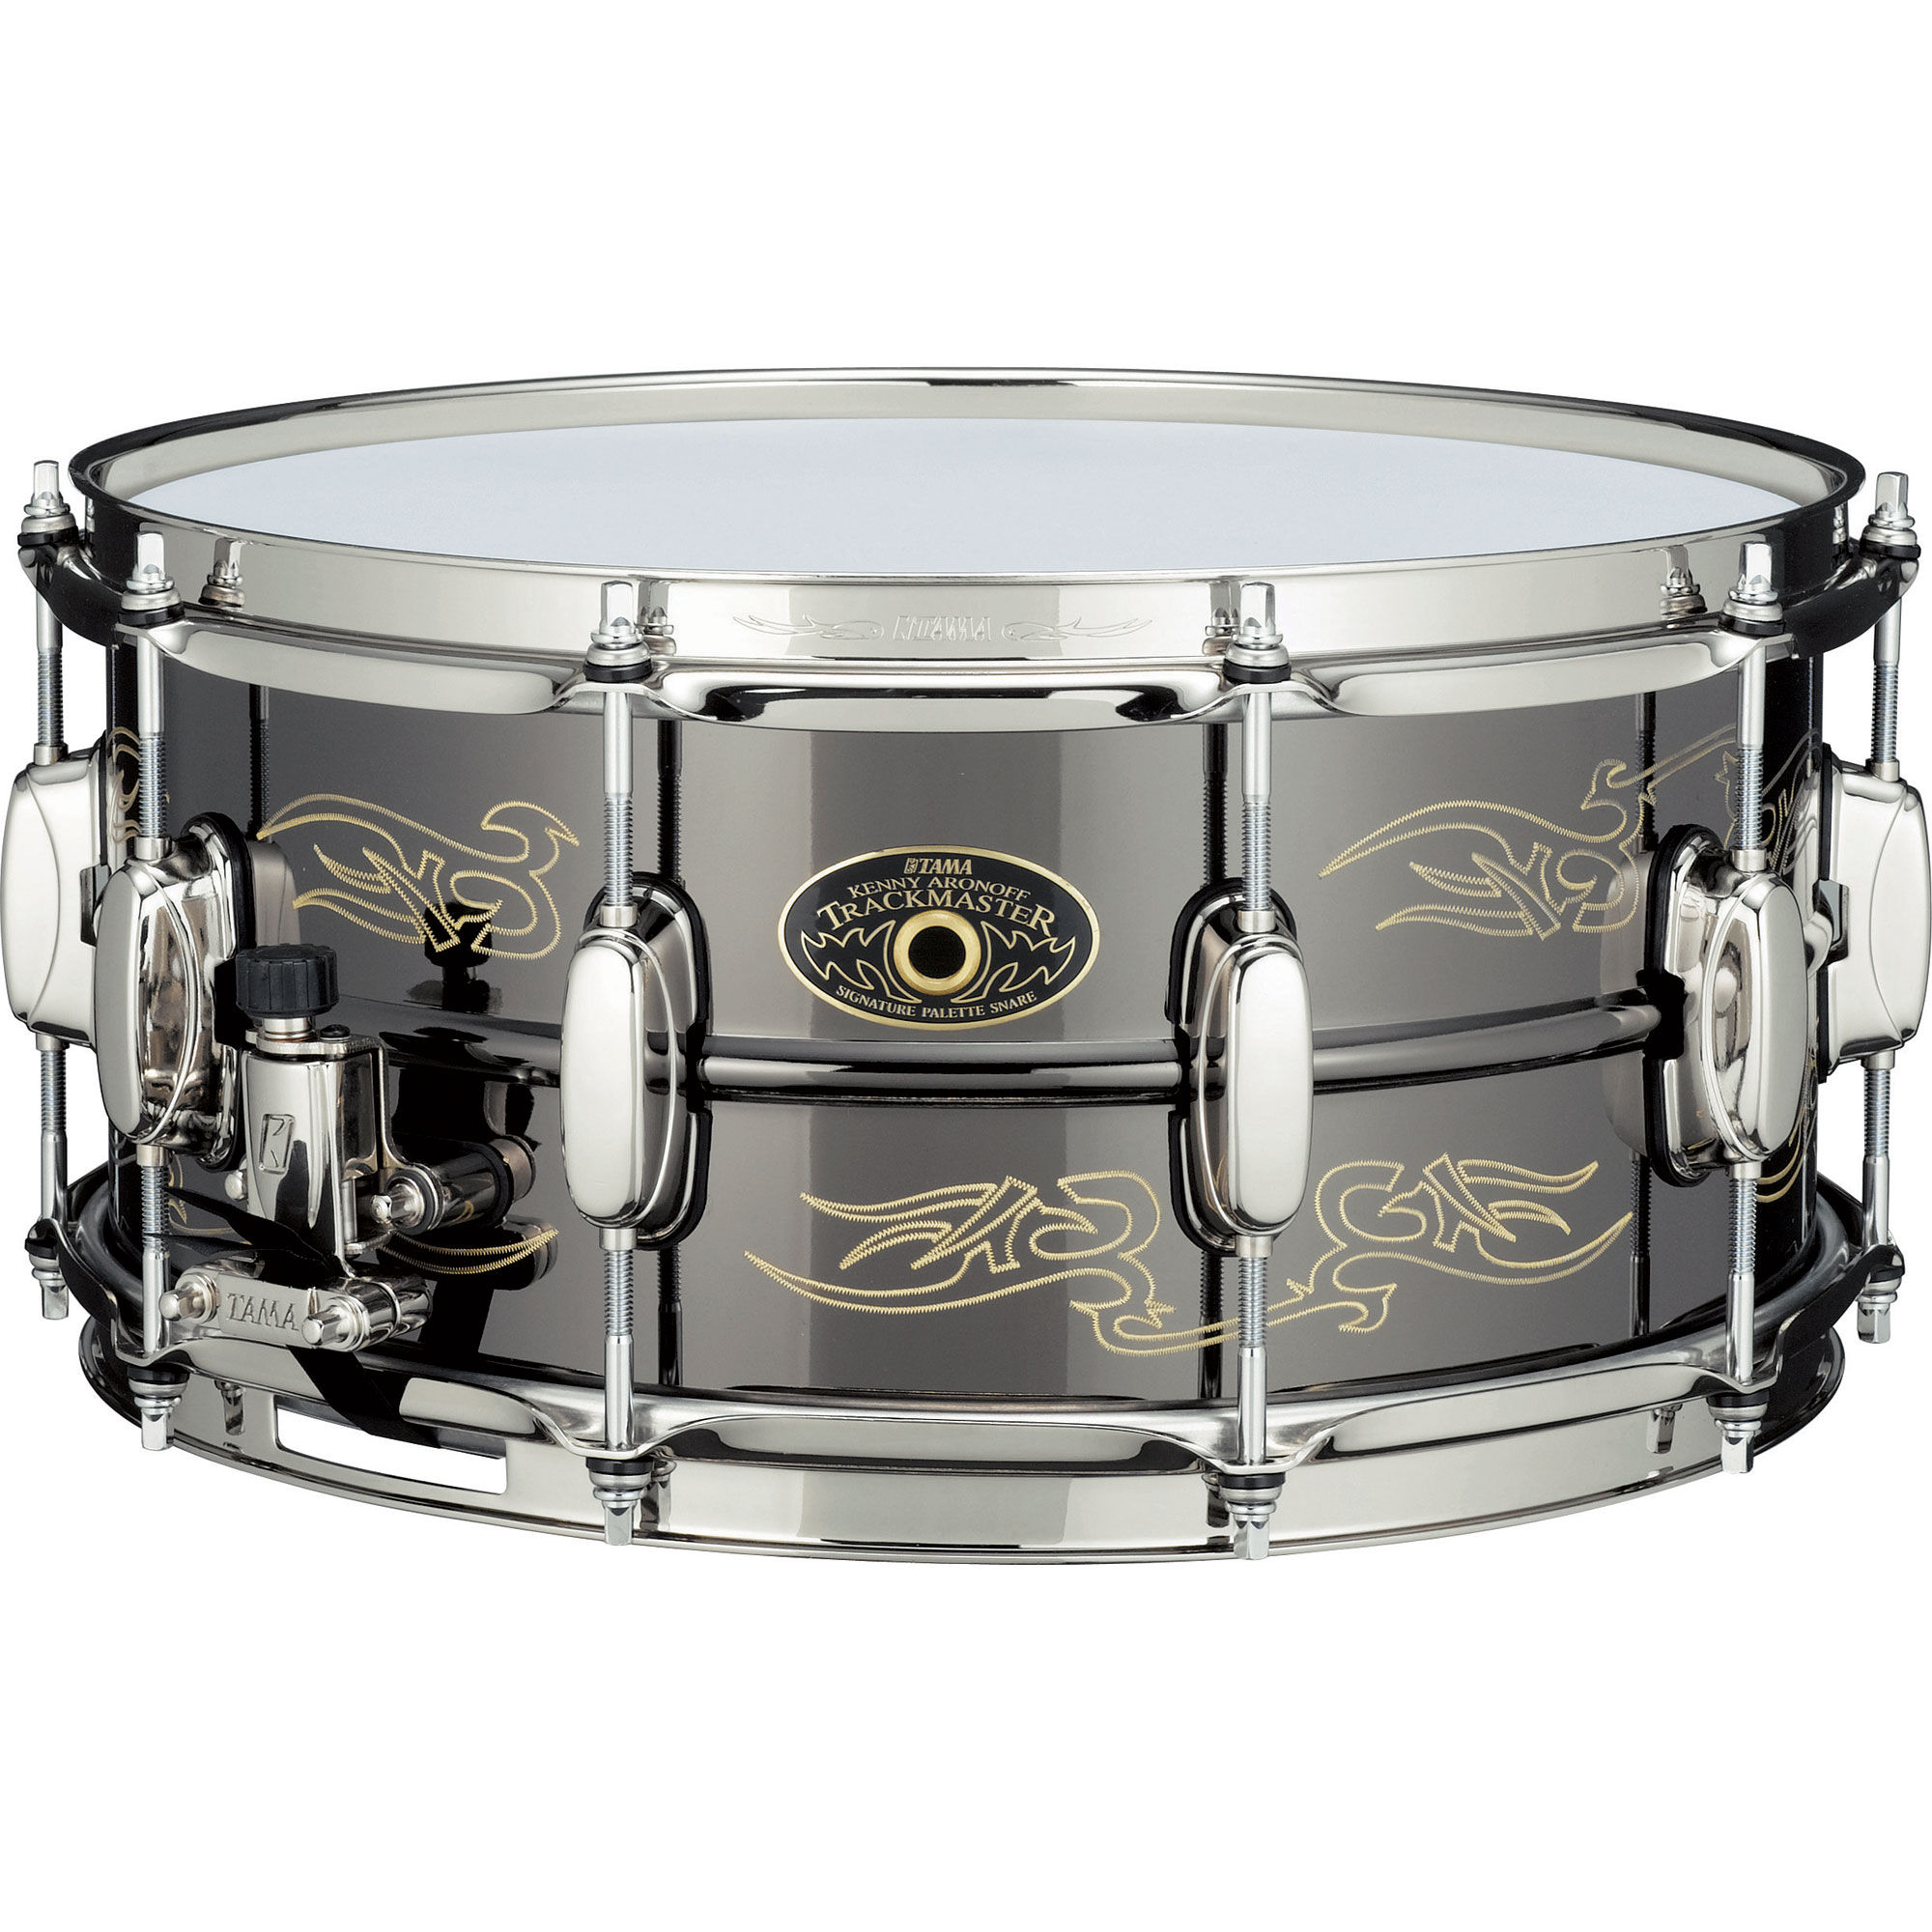 "Tama 5"" x 14"" Kenny Aronoff Trackmaster Signature Brass Snare Drum"